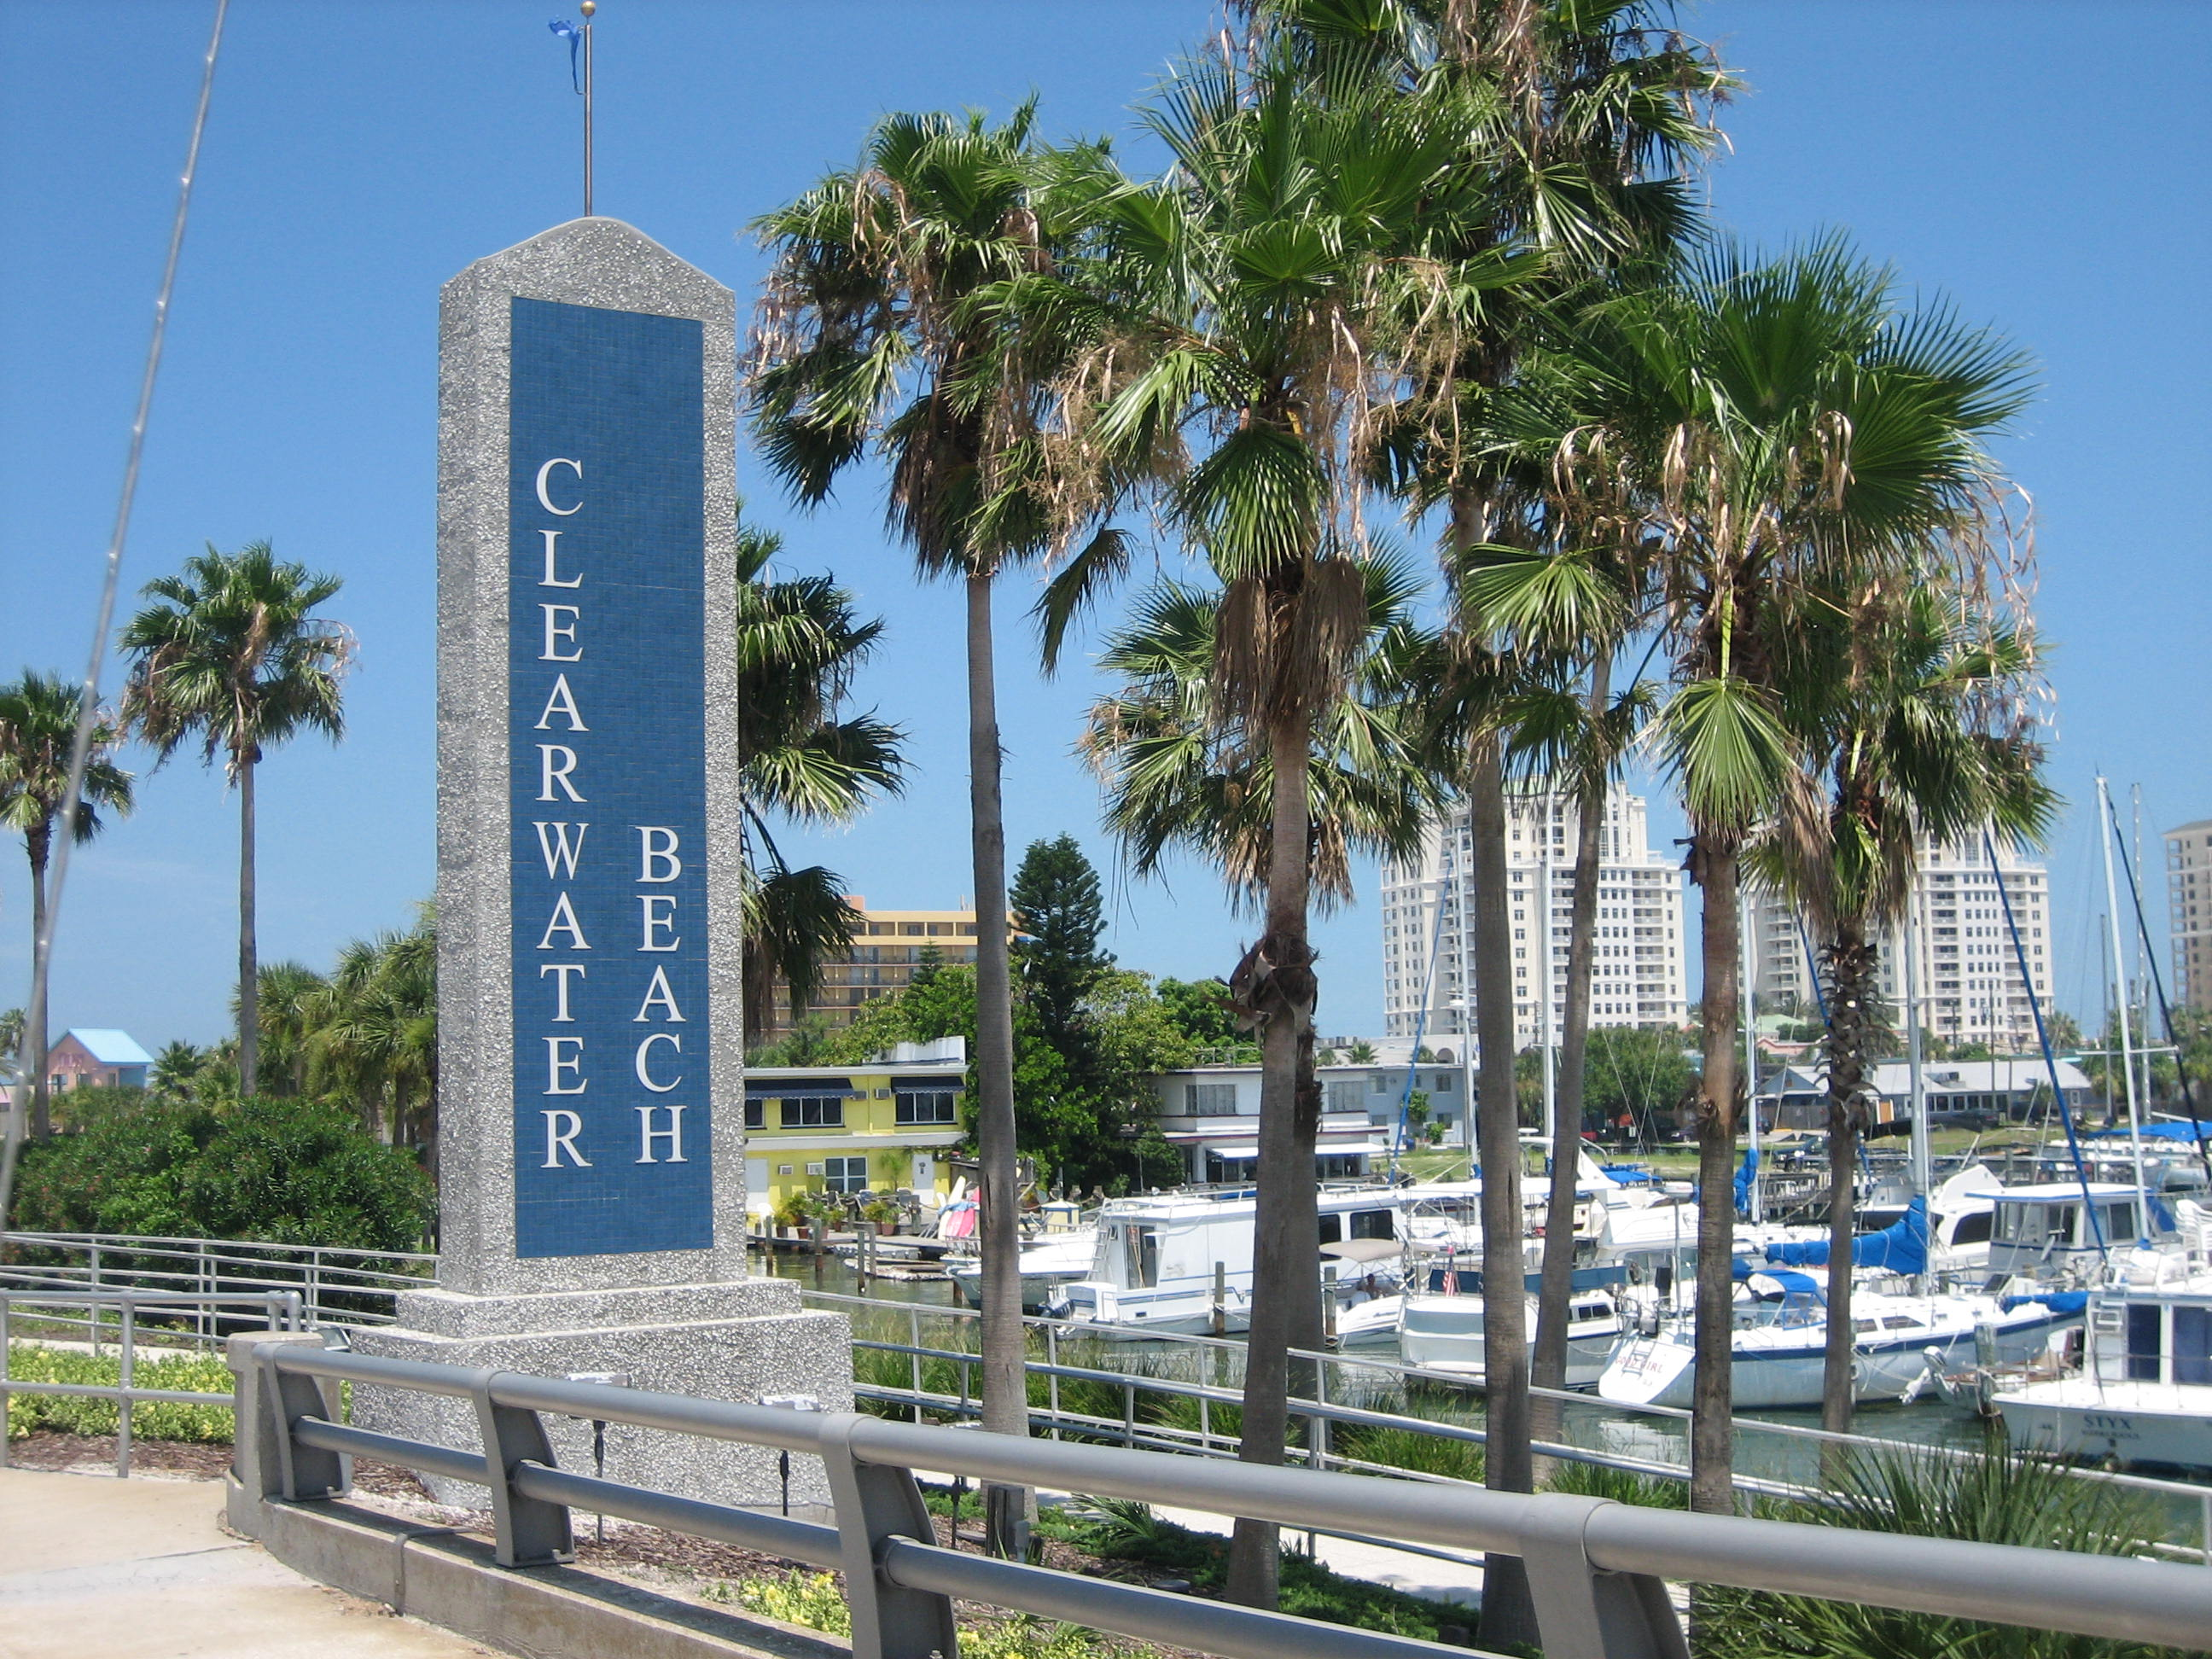 Entering Clearwater Beach